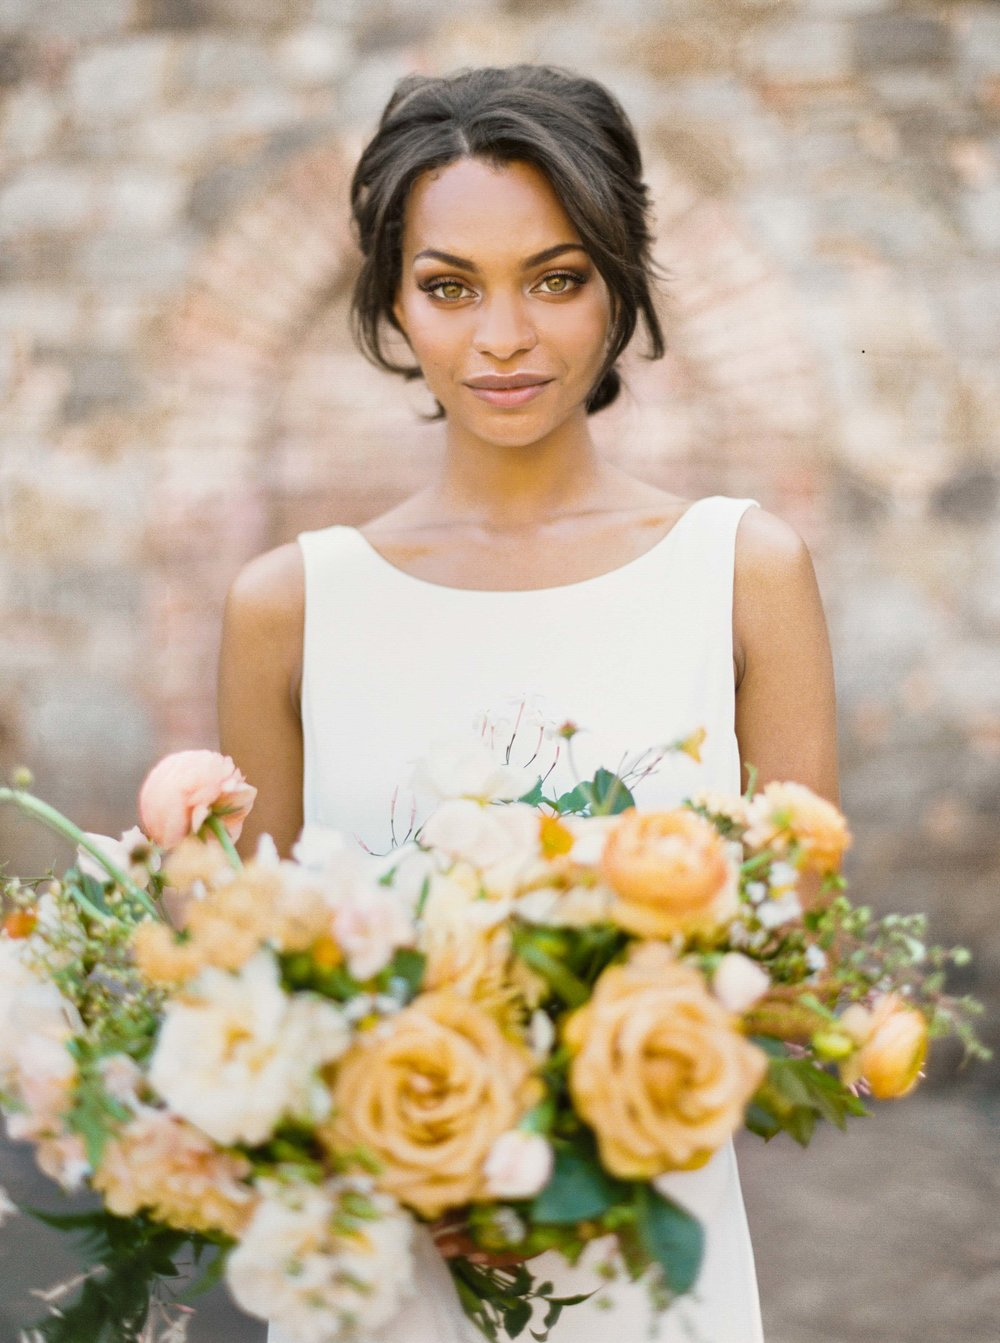 037napa_wedding_photographer_and_videographer_destination_and_elopement_photography.jpg